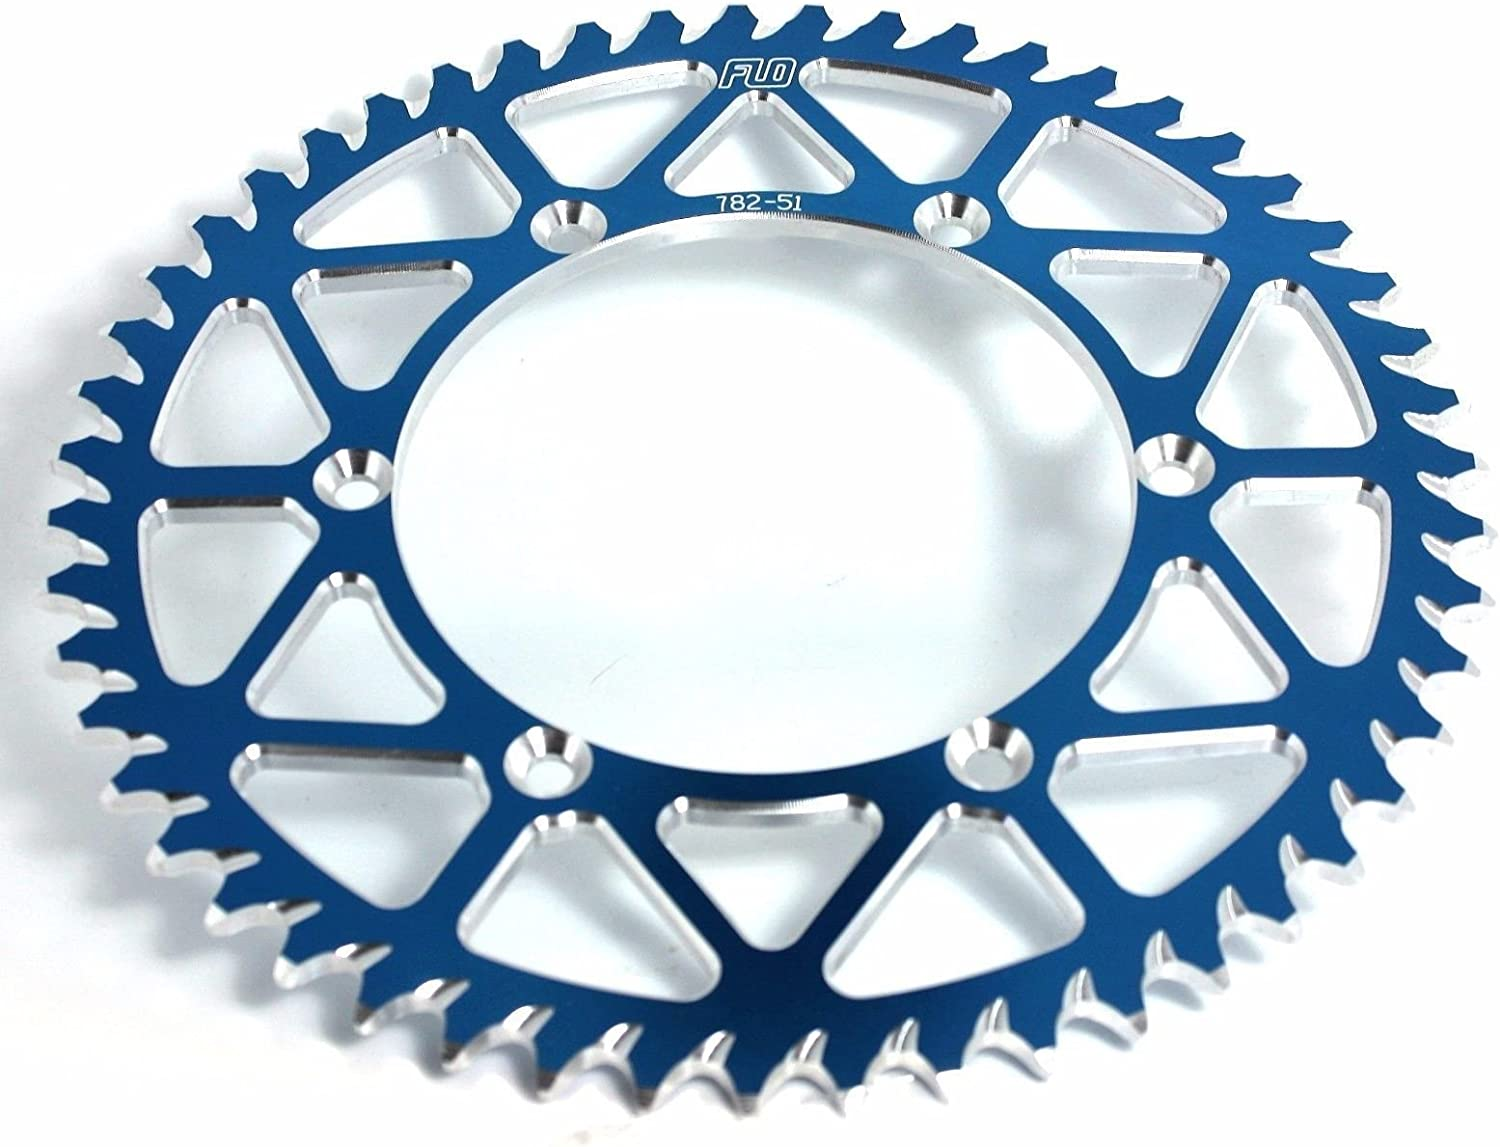 13T FRONT // 48 50 51 TOOTH BLACK REAR SPROCKET RENTHAL R1 CHAIN AND SPROCKET COMBO KIT YAMAHA YZ450F // YZ250 49 2 Stroke 51T